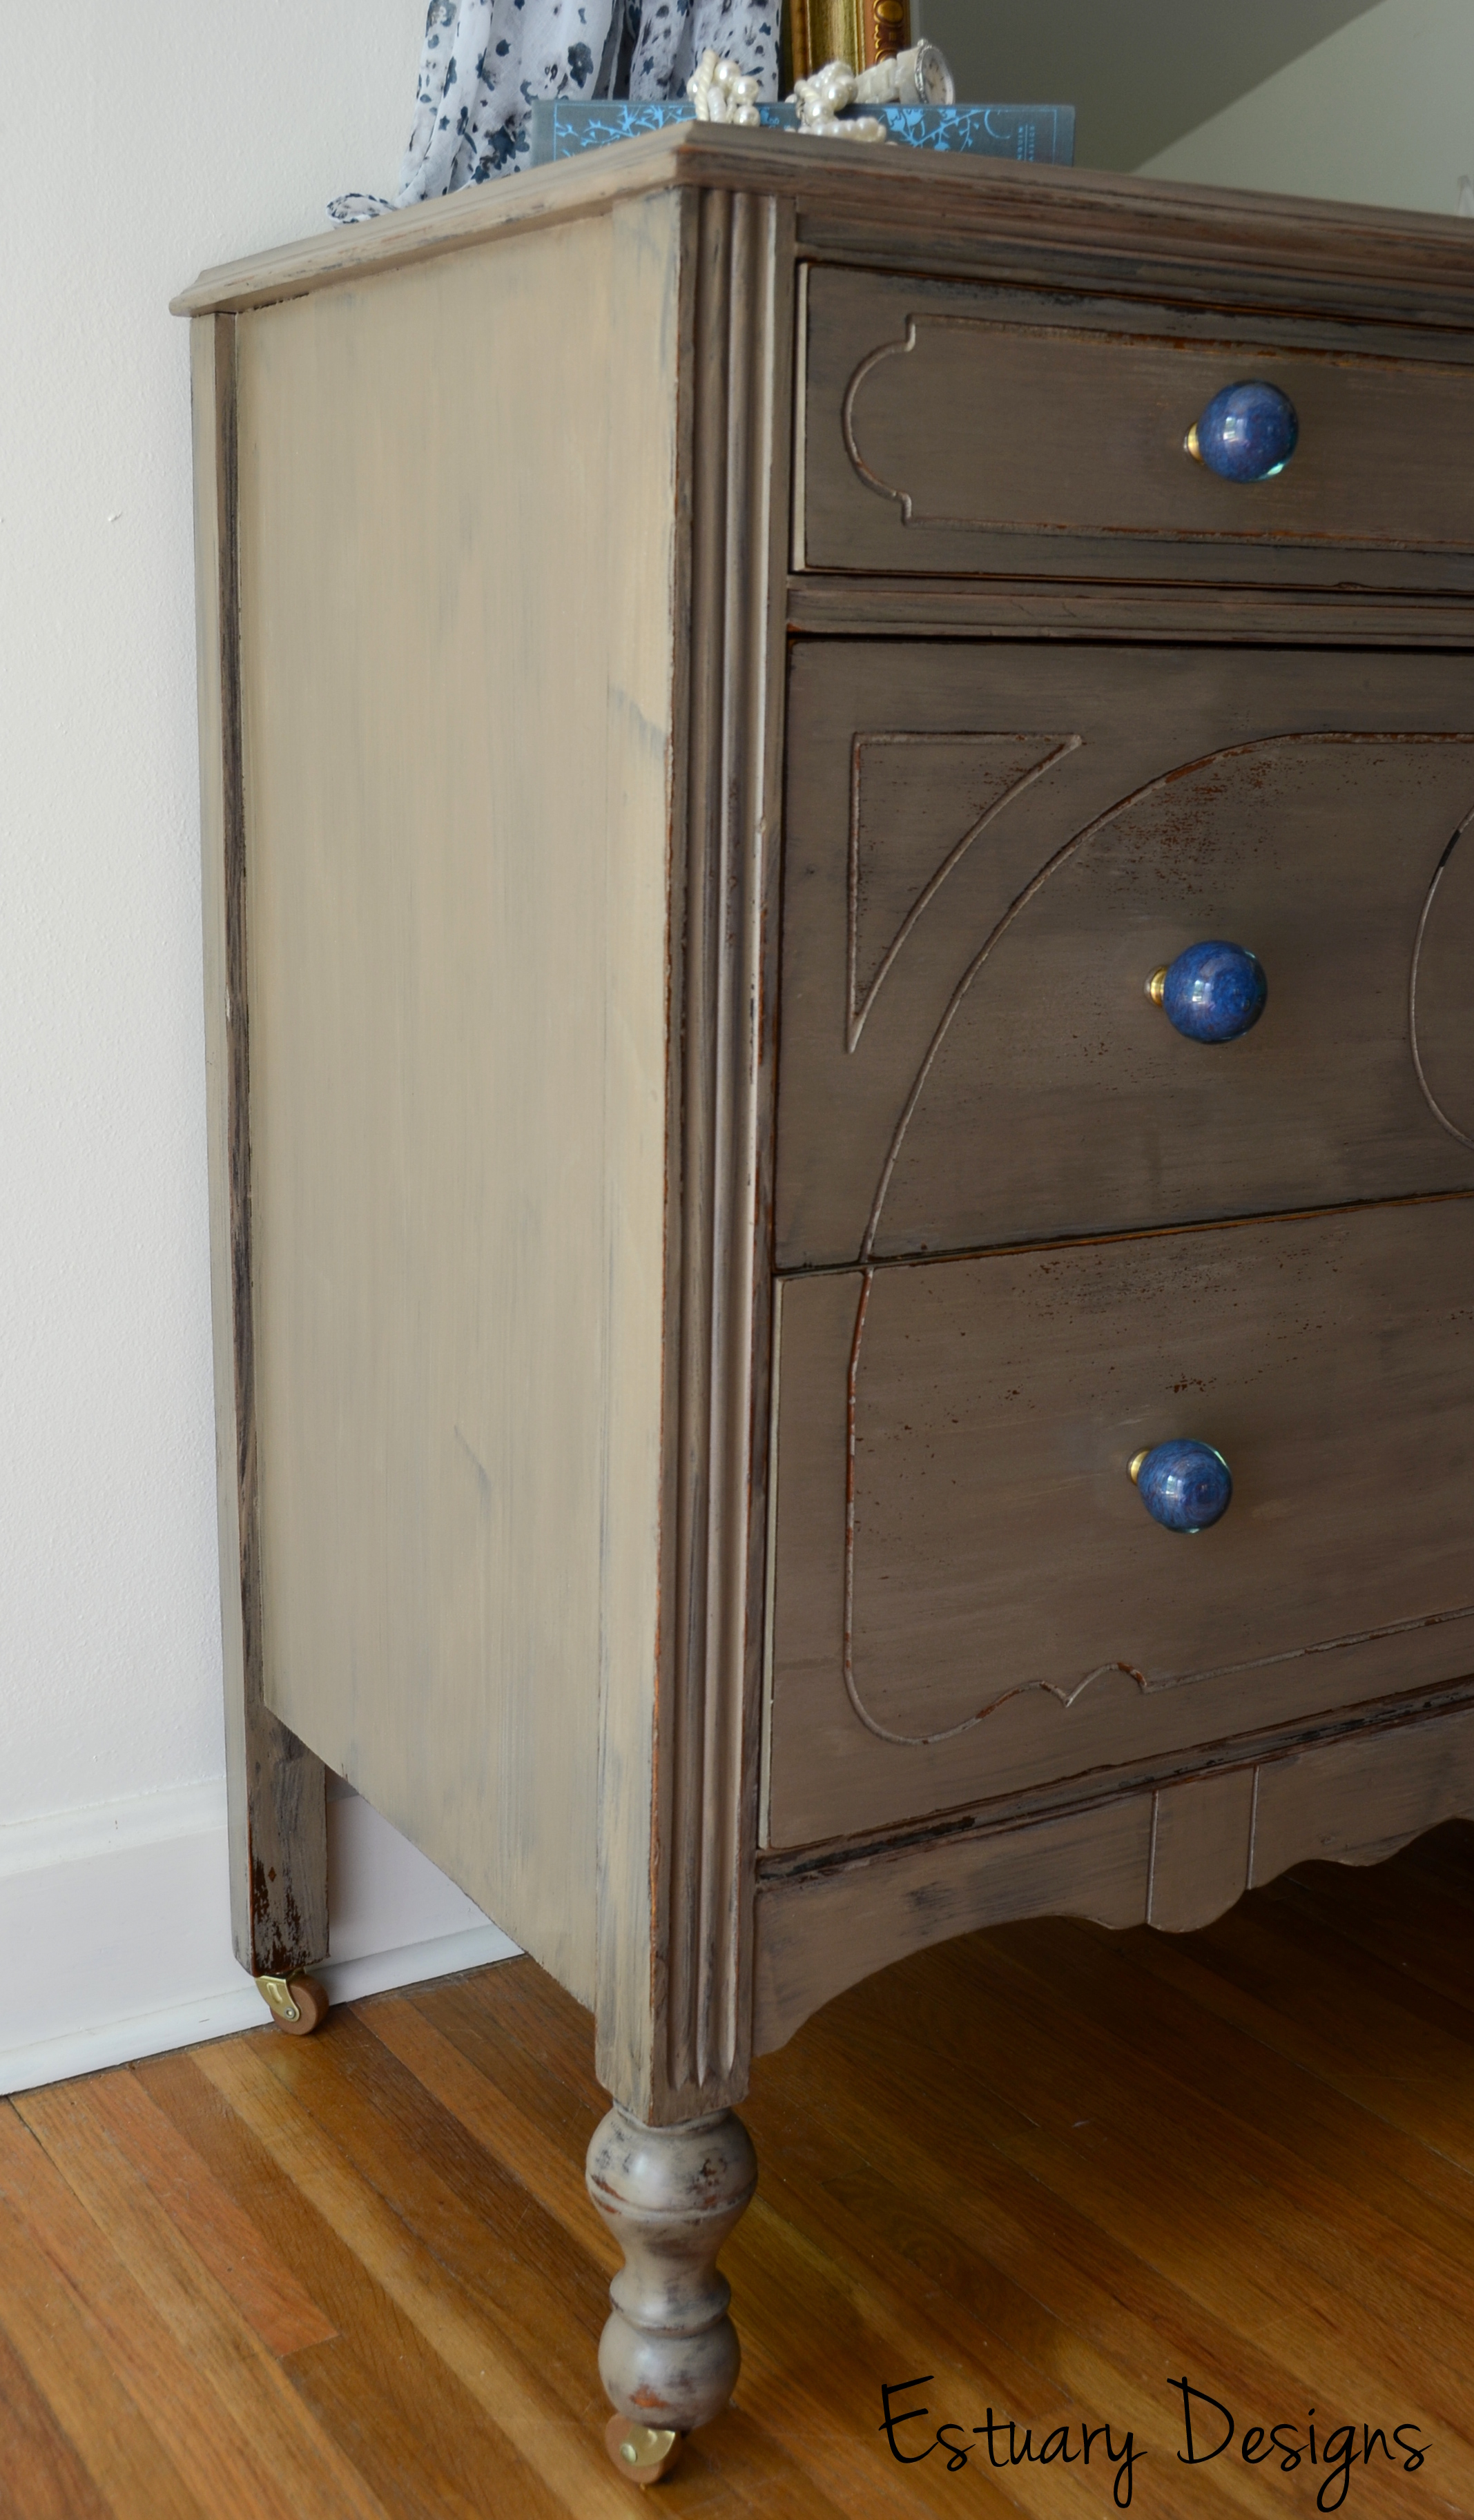 A Driftwood Esque Dresser With Blue Glass Knobs Estuary Designs